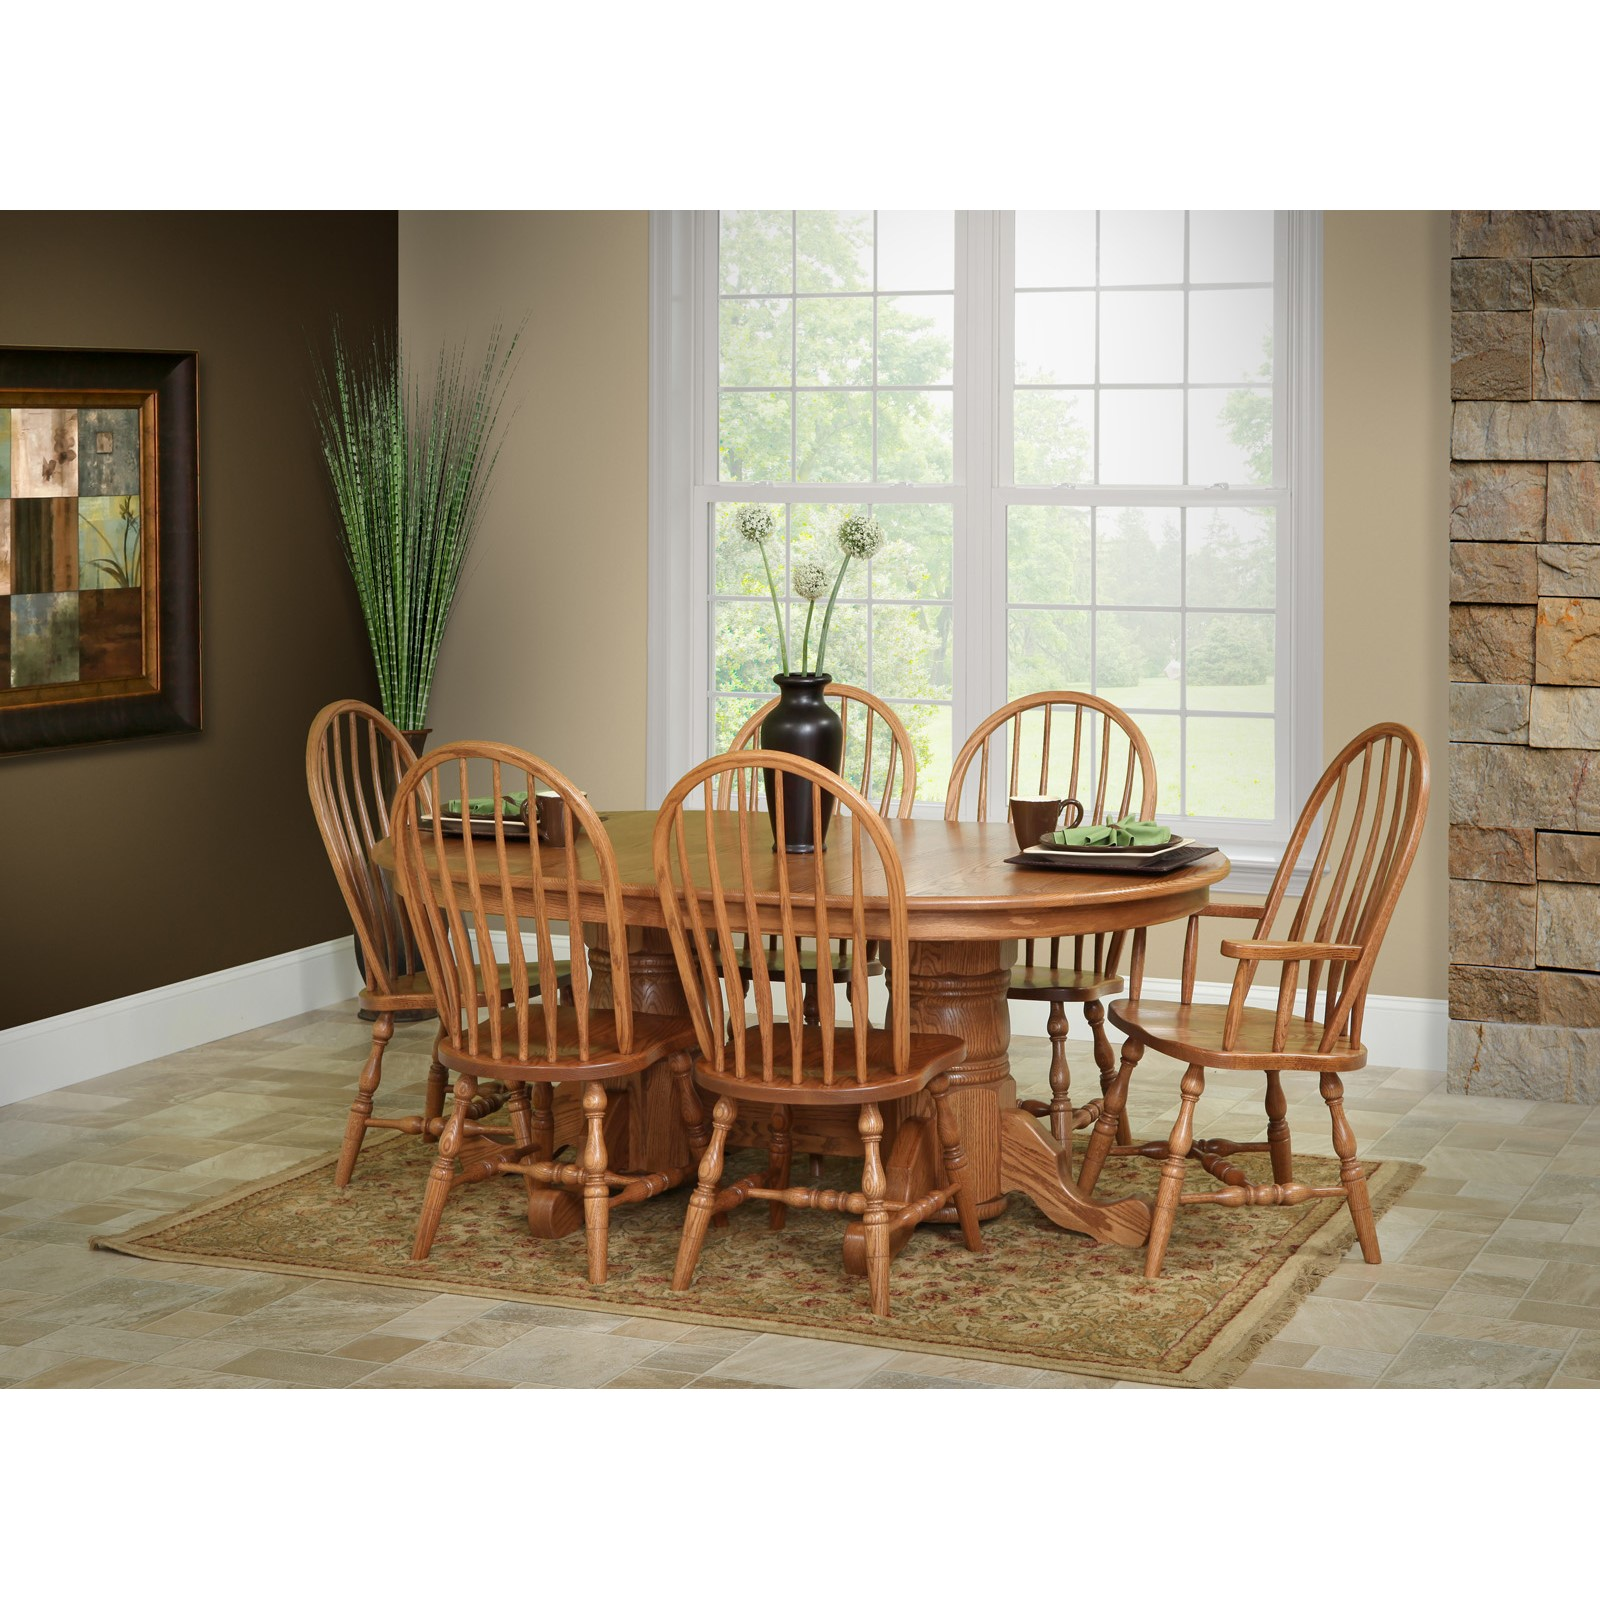 Chateau 7 Piece Dining Set By Trailway